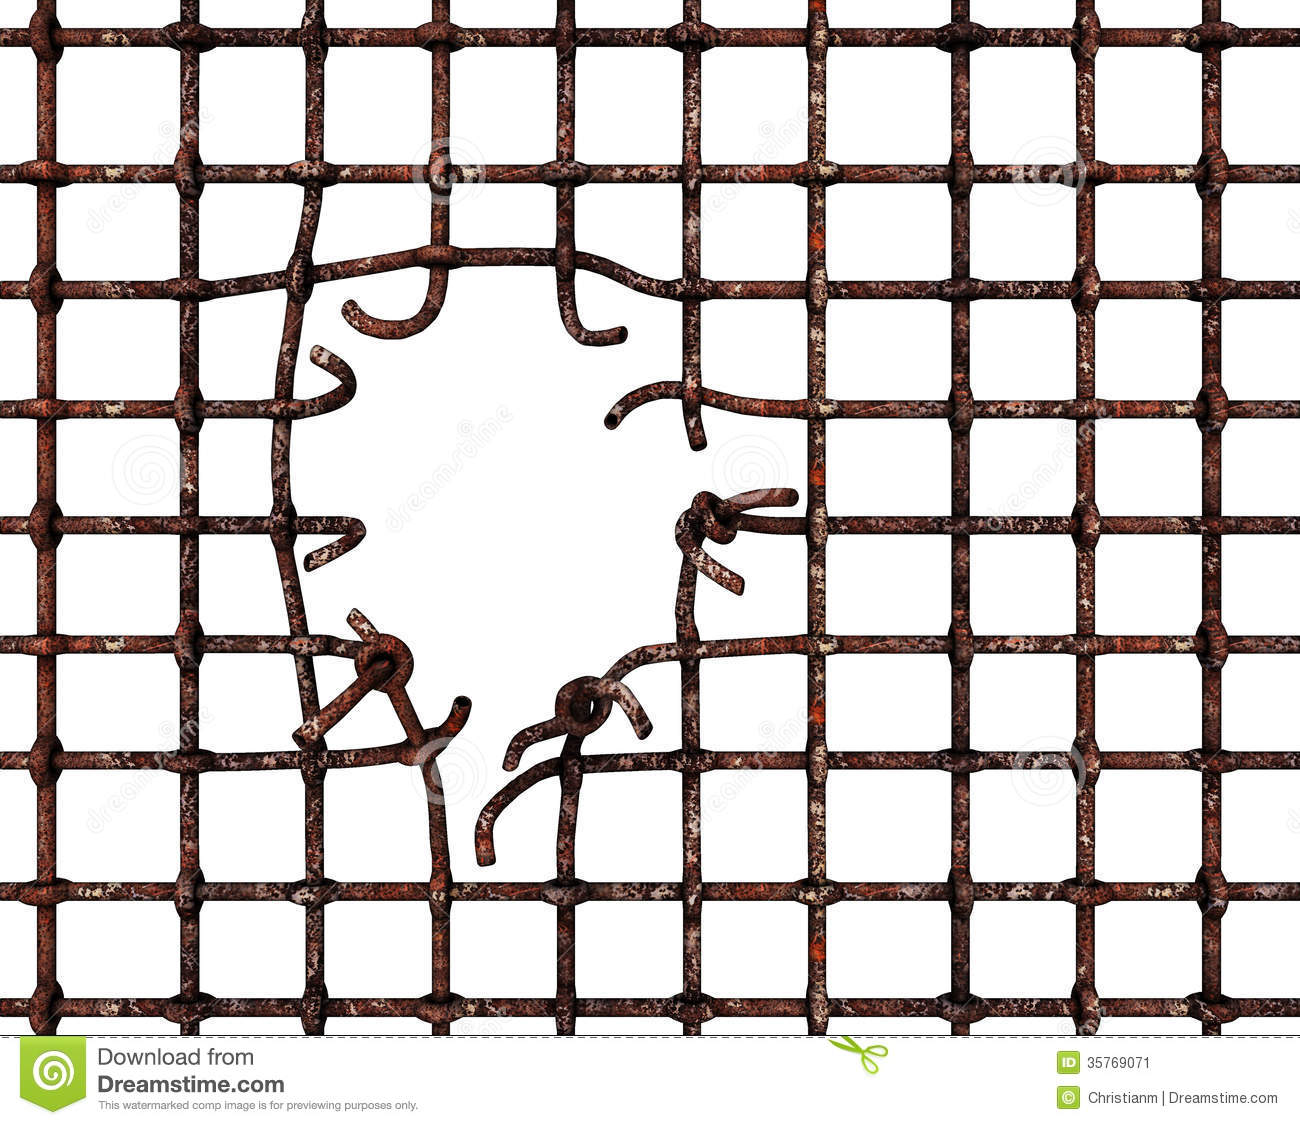 Rusty Prison Bars Stock Photos, Images, & Pictures - 460 Images